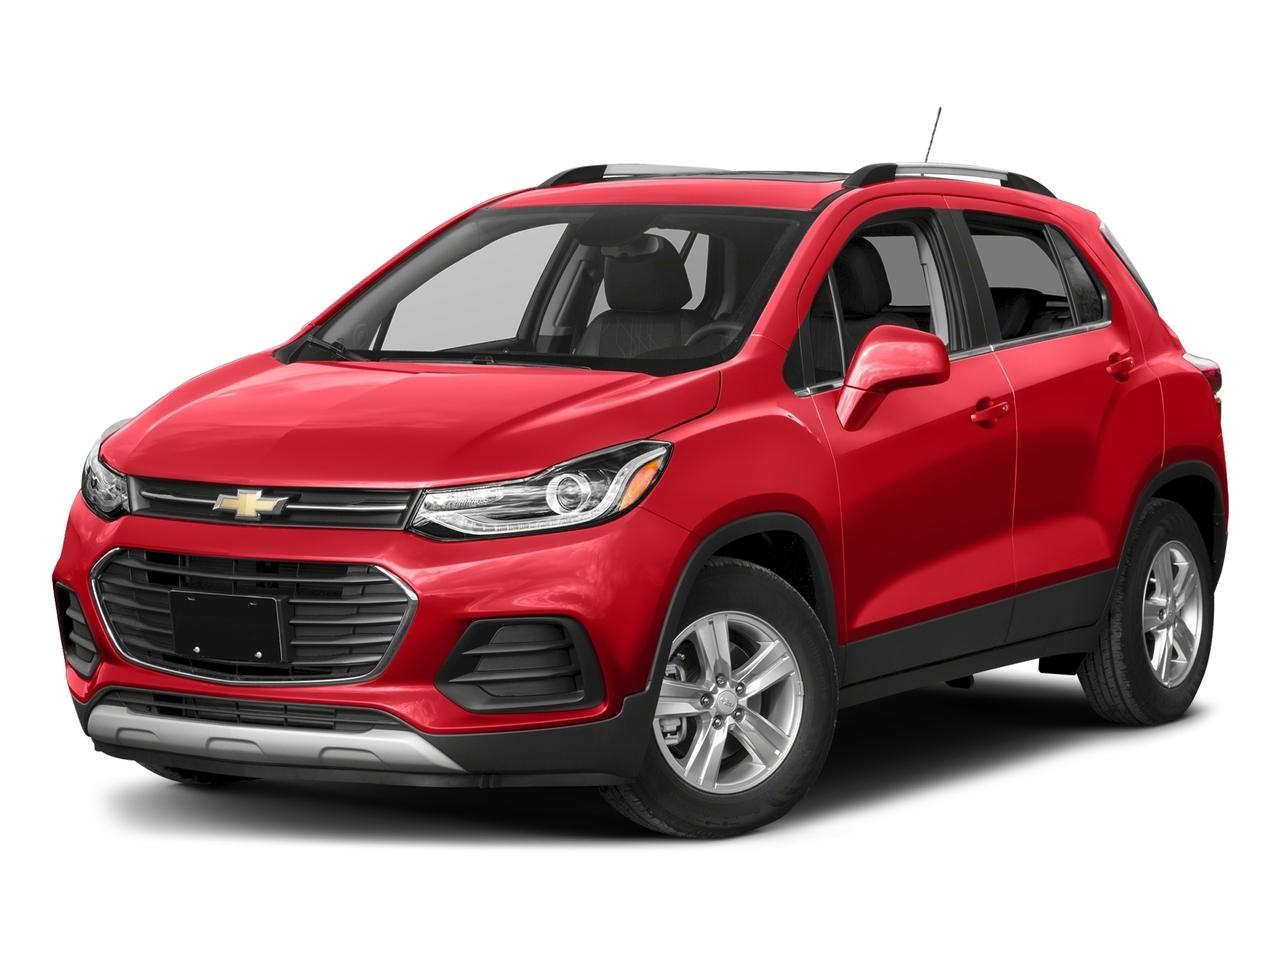 2017 Chevrolet Trax Vehicle Photo in Boonville, IN 47601